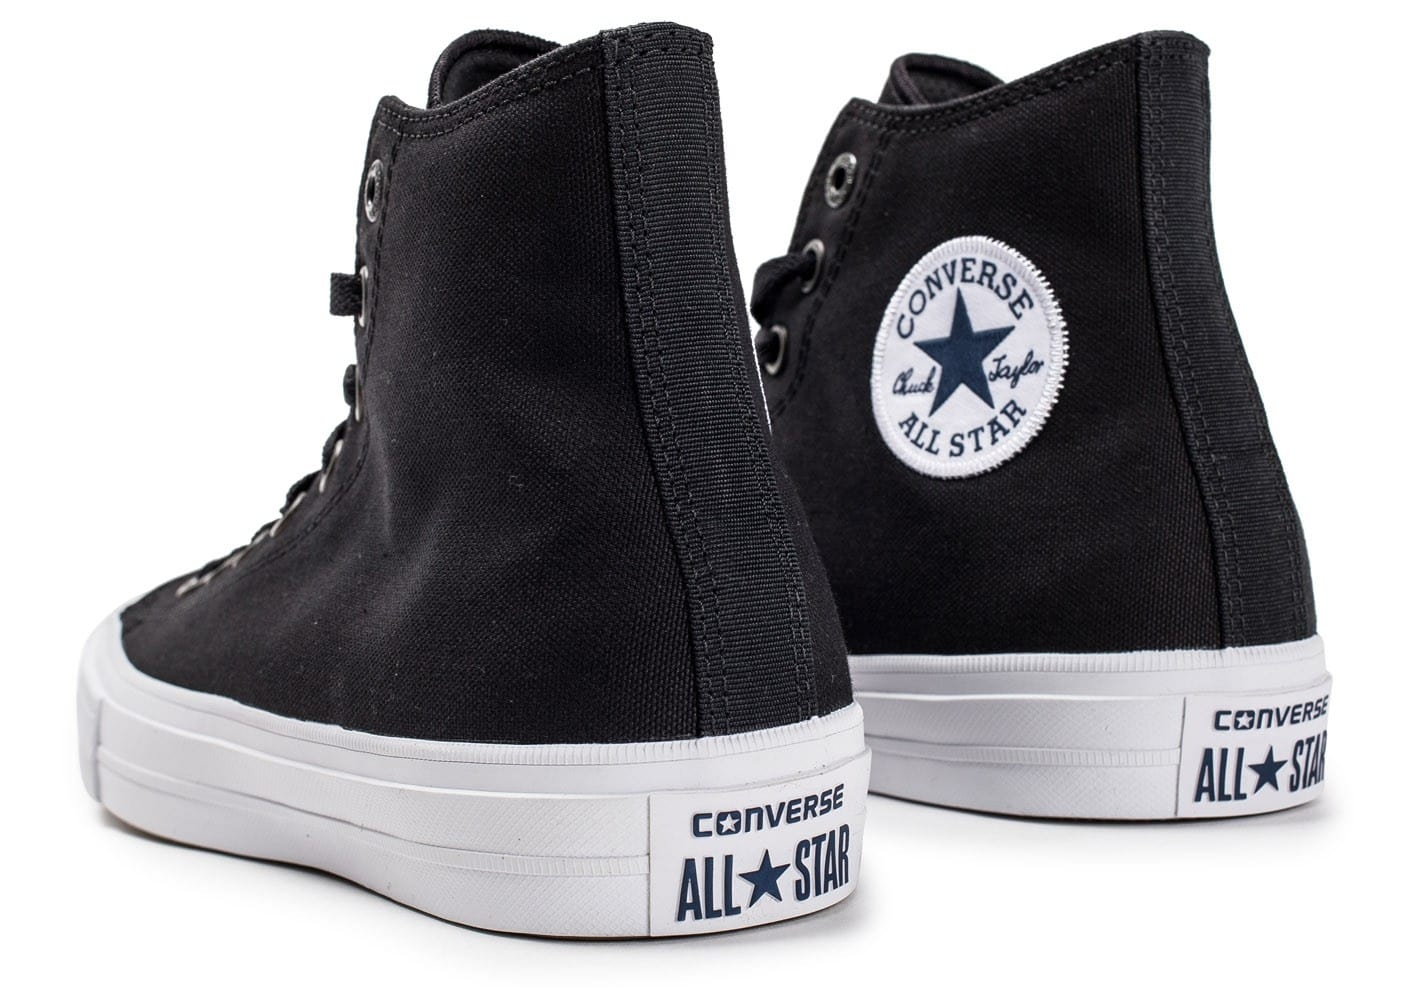 ... Chaussures Converse Chuck Taylor All-Star 2 Montante noire vue dessous  ... 397aa44823f9